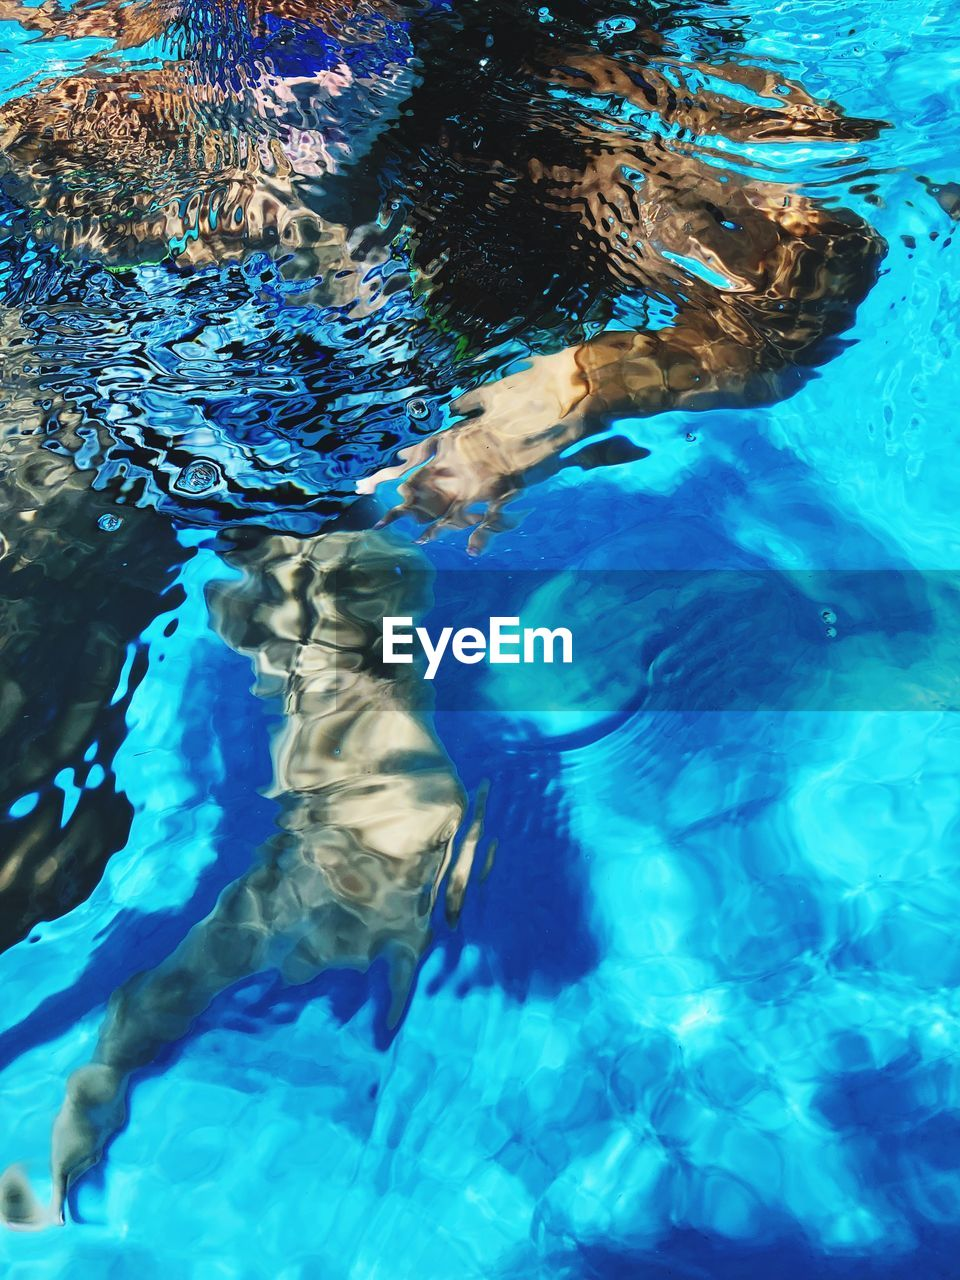 water, swimming, pool, swimming pool, blue, sea, underwater, nature, high angle view, day, rippled, swimwear, leisure activity, group of animals, outdoors, animals in the wild, animal themes, animal wildlife, one person, undersea, marine, purity